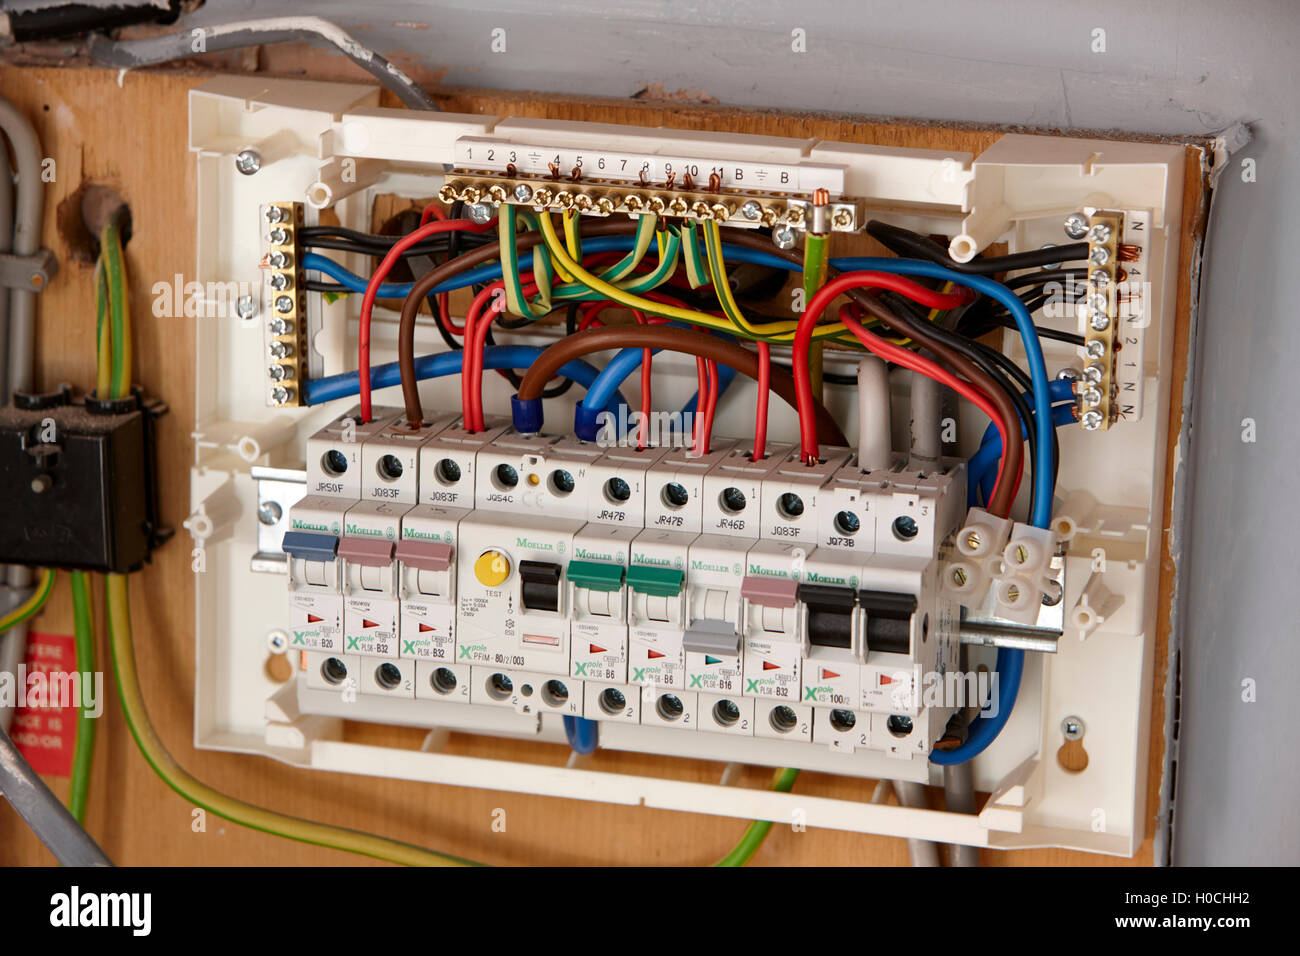 wiring as well kitchen diagram nema apc wiring diagrams